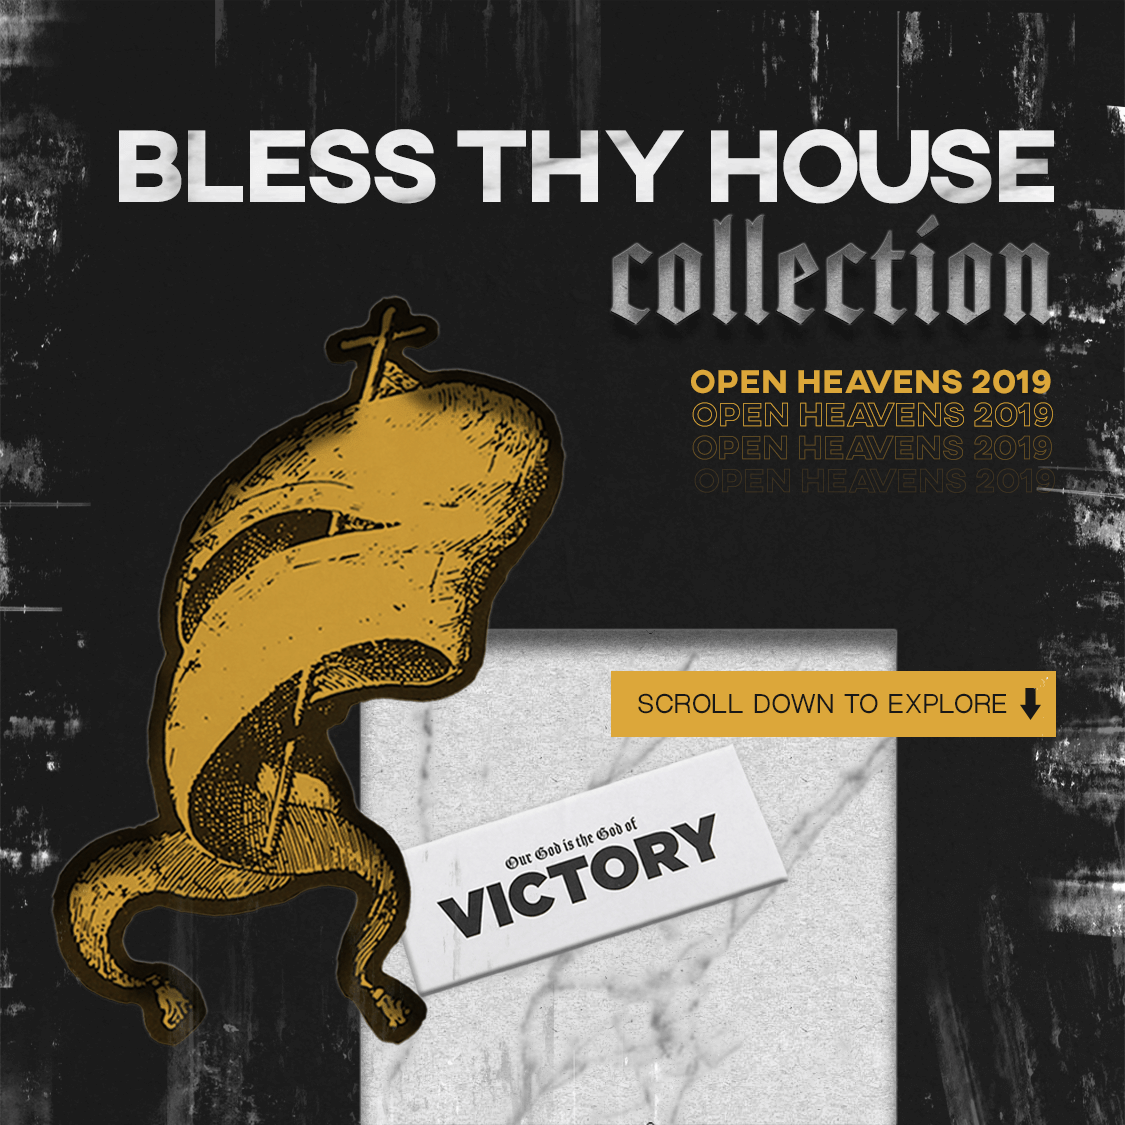 Bless Thy House Collection, Bethel Redding, Victory